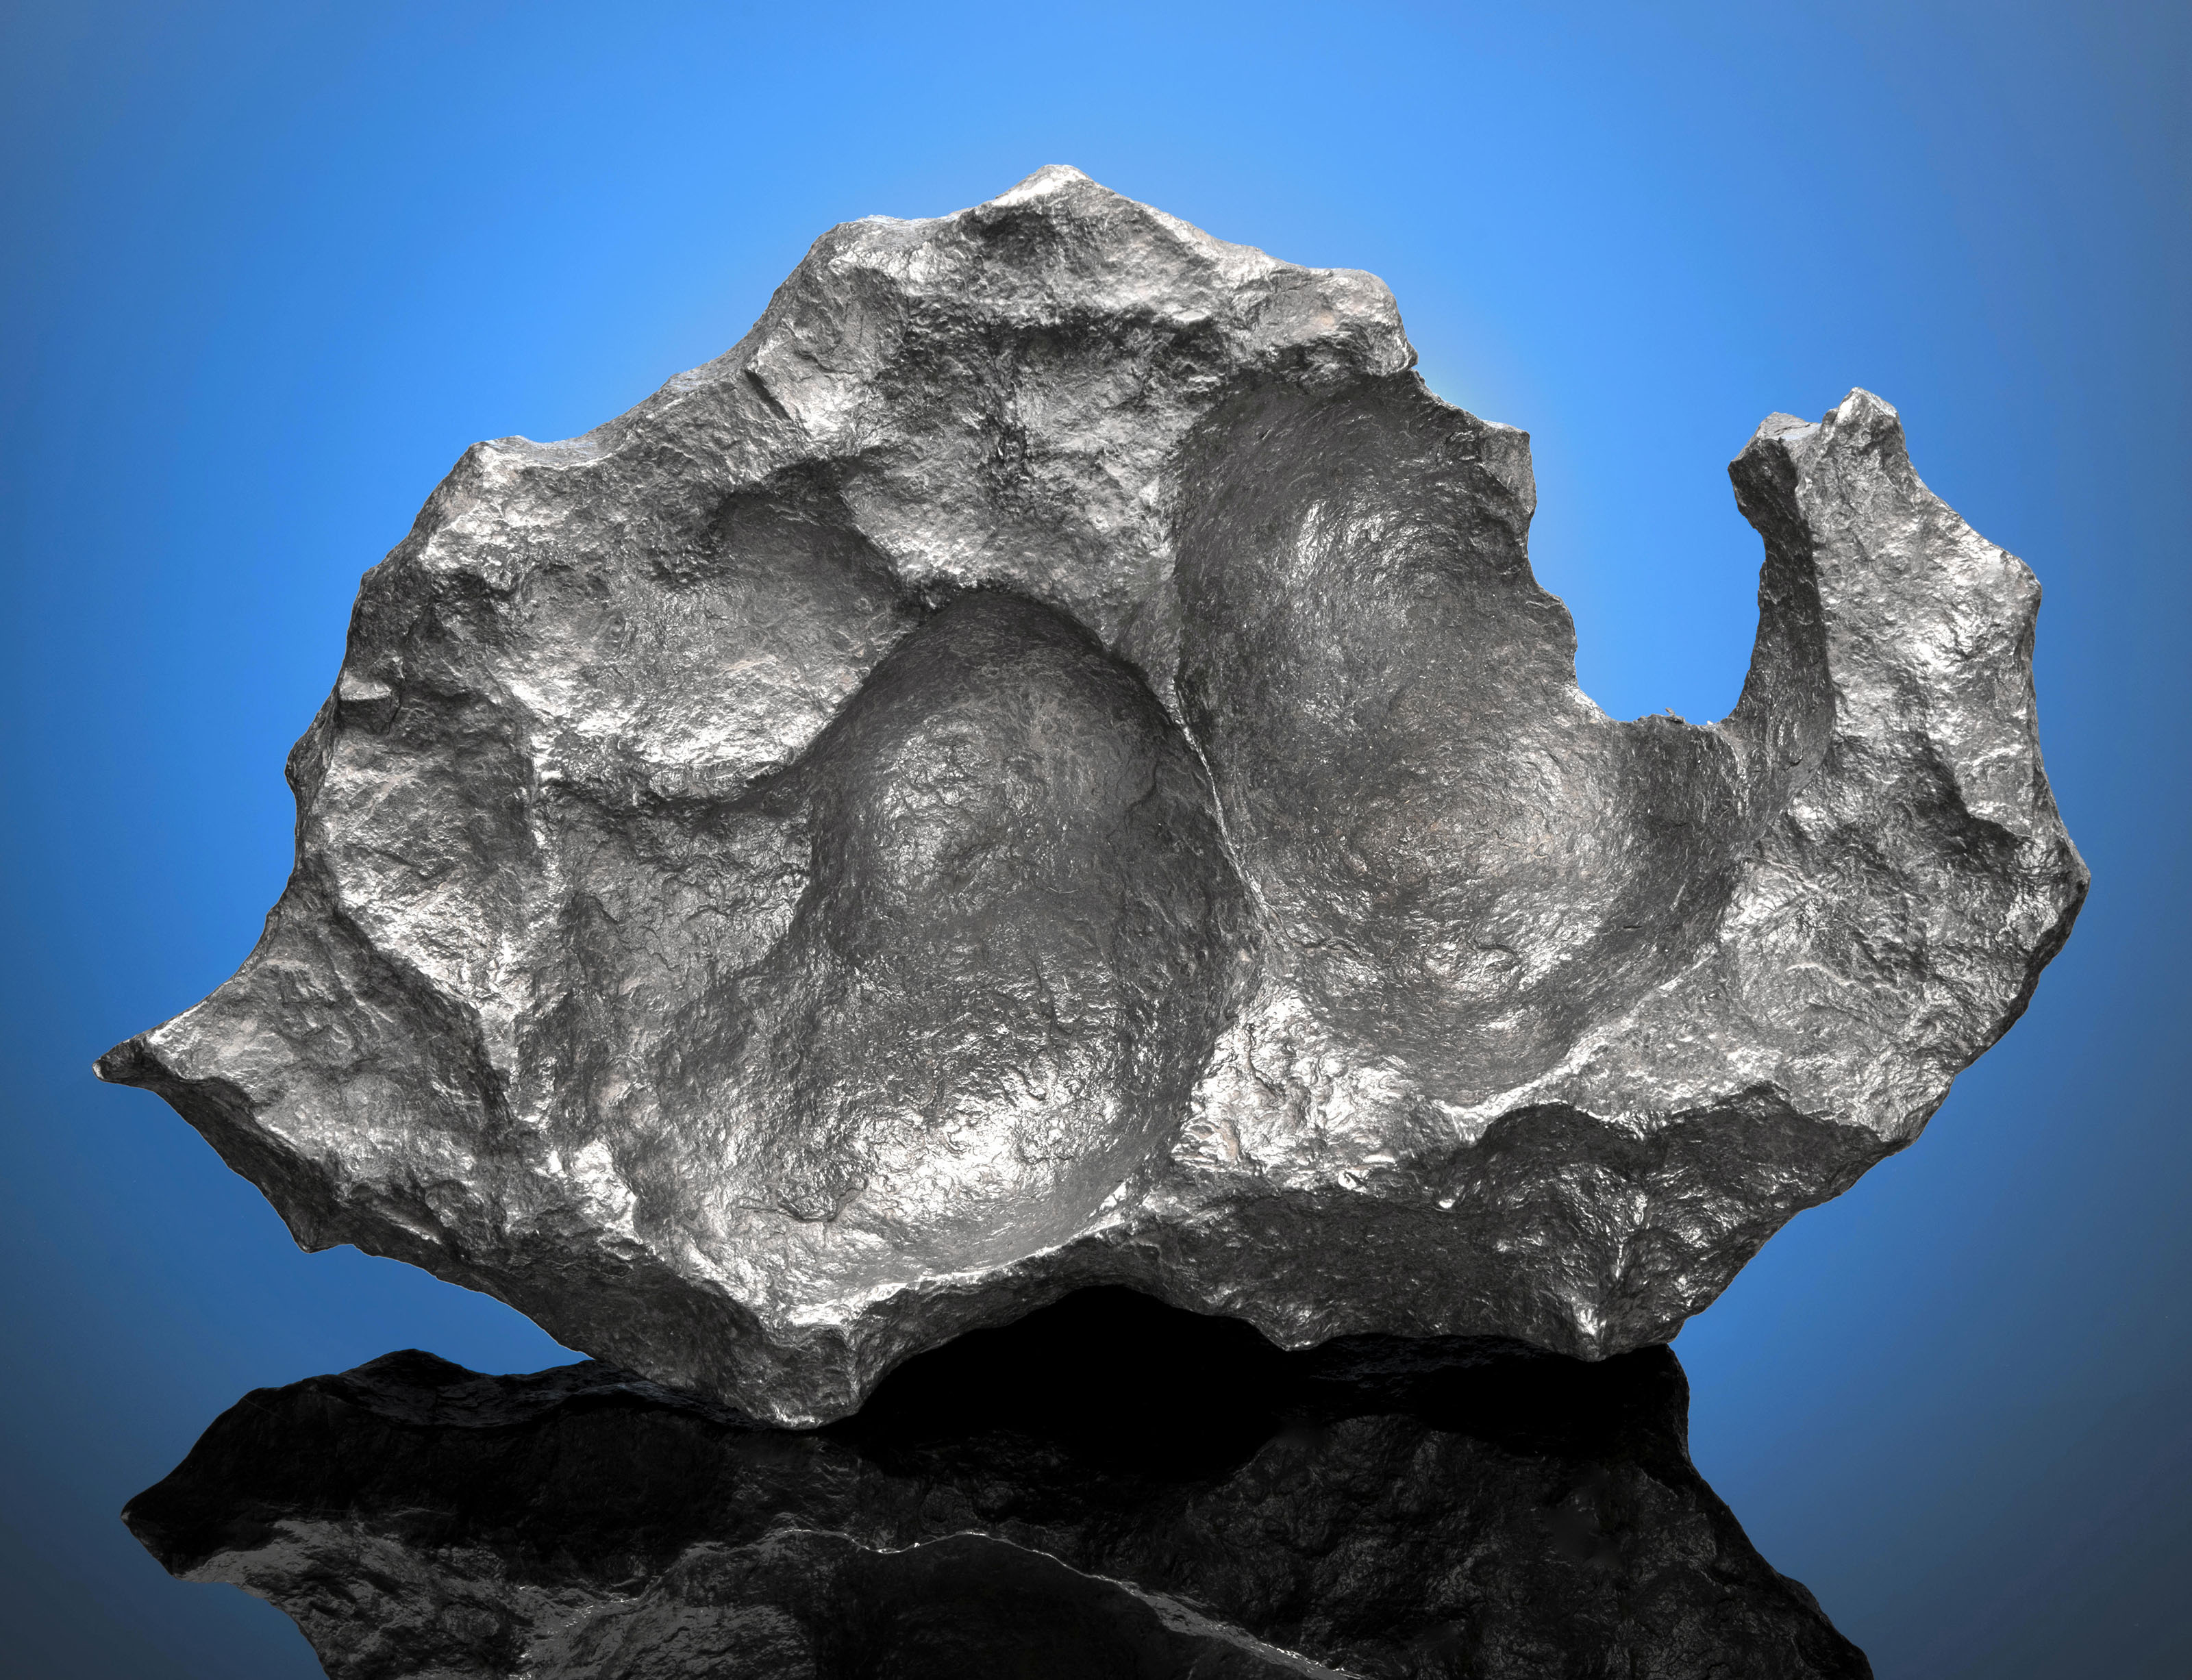 AESTHEIC GIBEON METEORITE WITH TWO SCOOPS — NATURAL SCULPTURE FROM OUTER SPACE